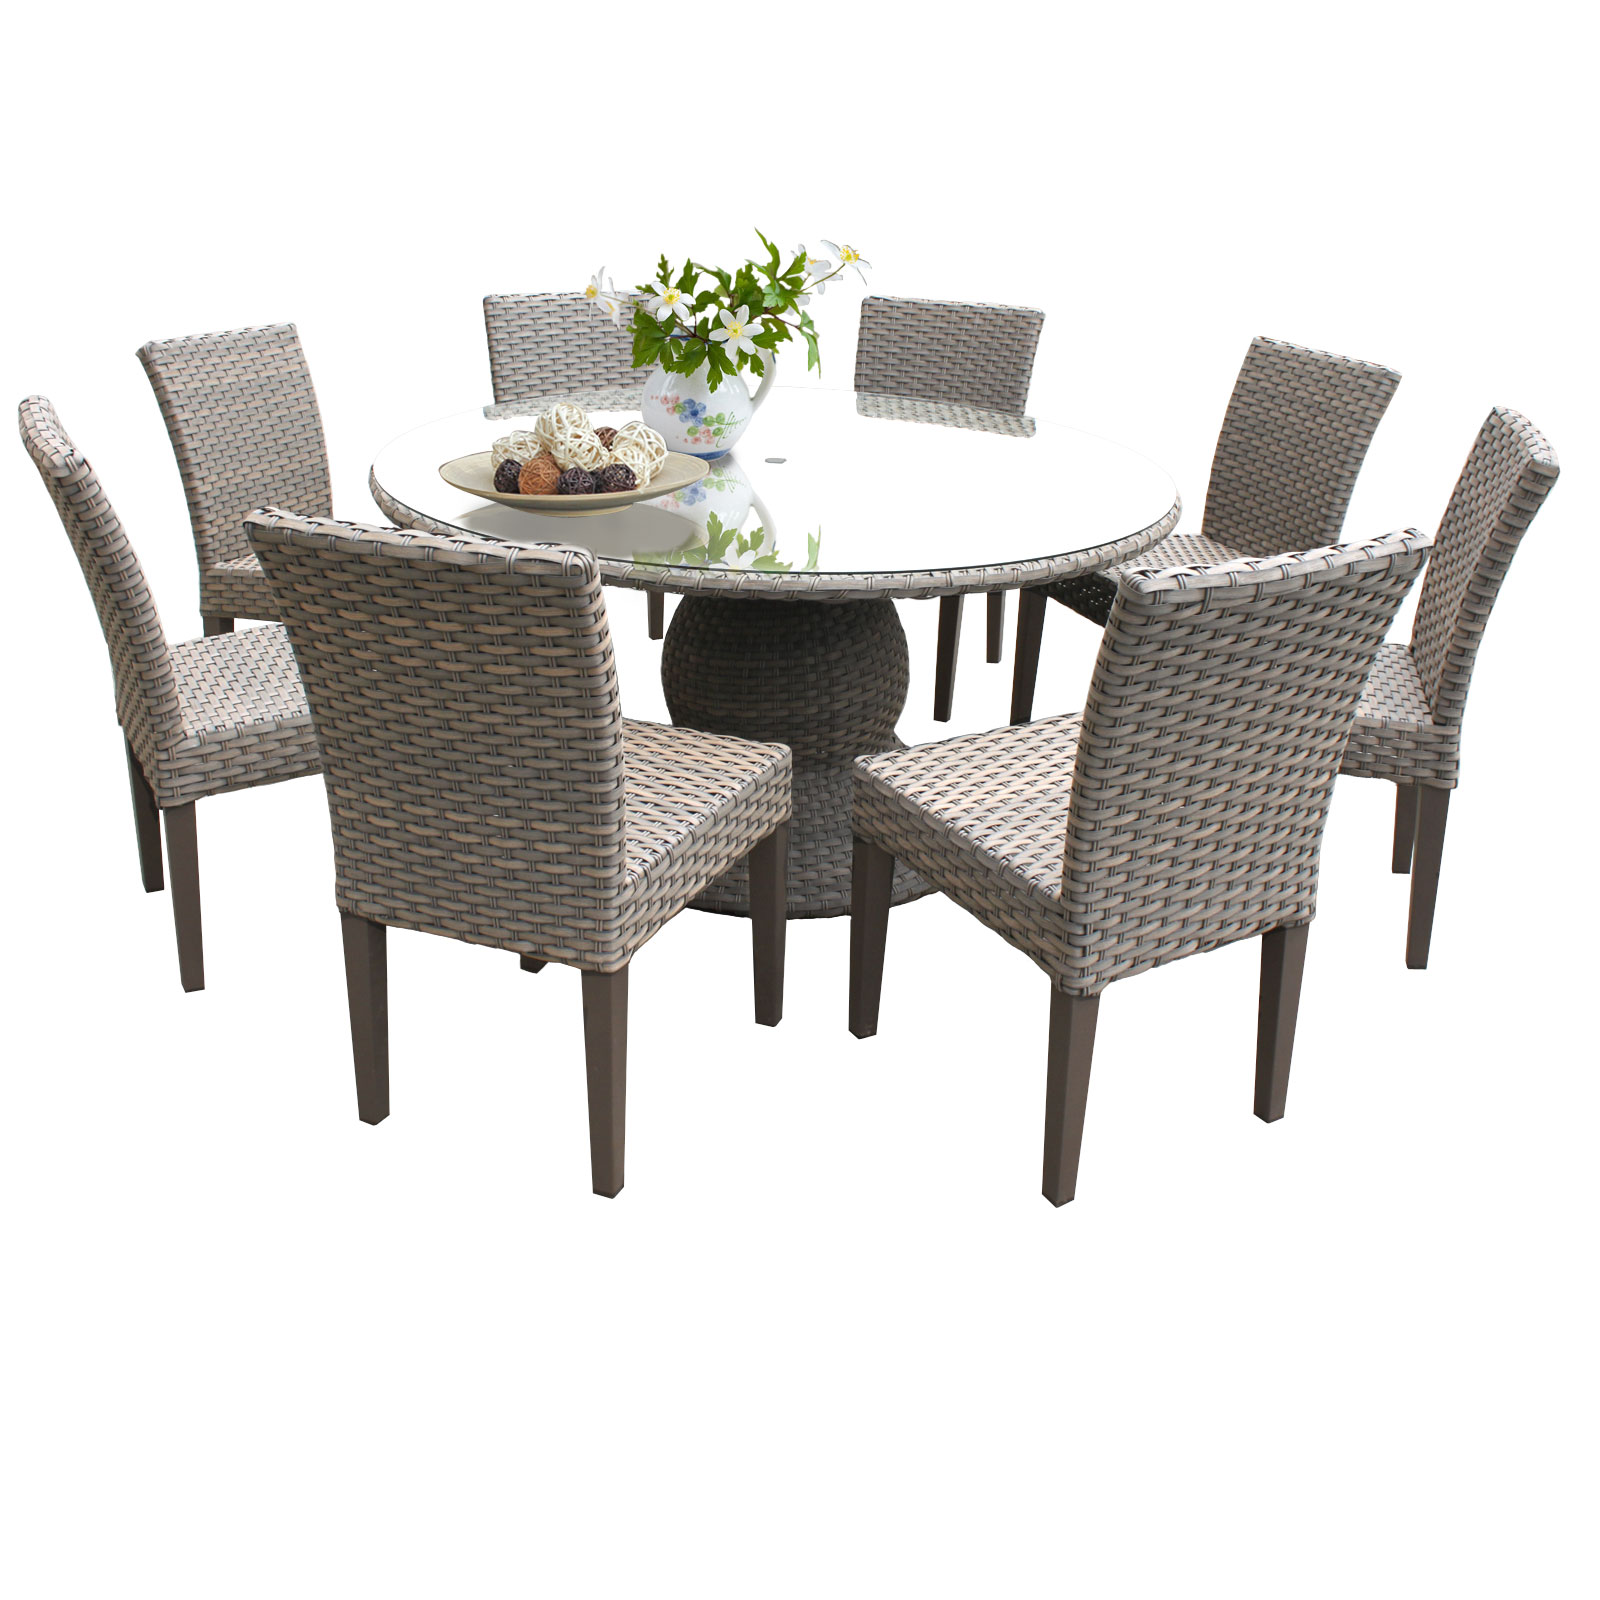 Harmony 60 Inch Outdoor Patio Dining Table With 8 Chairs